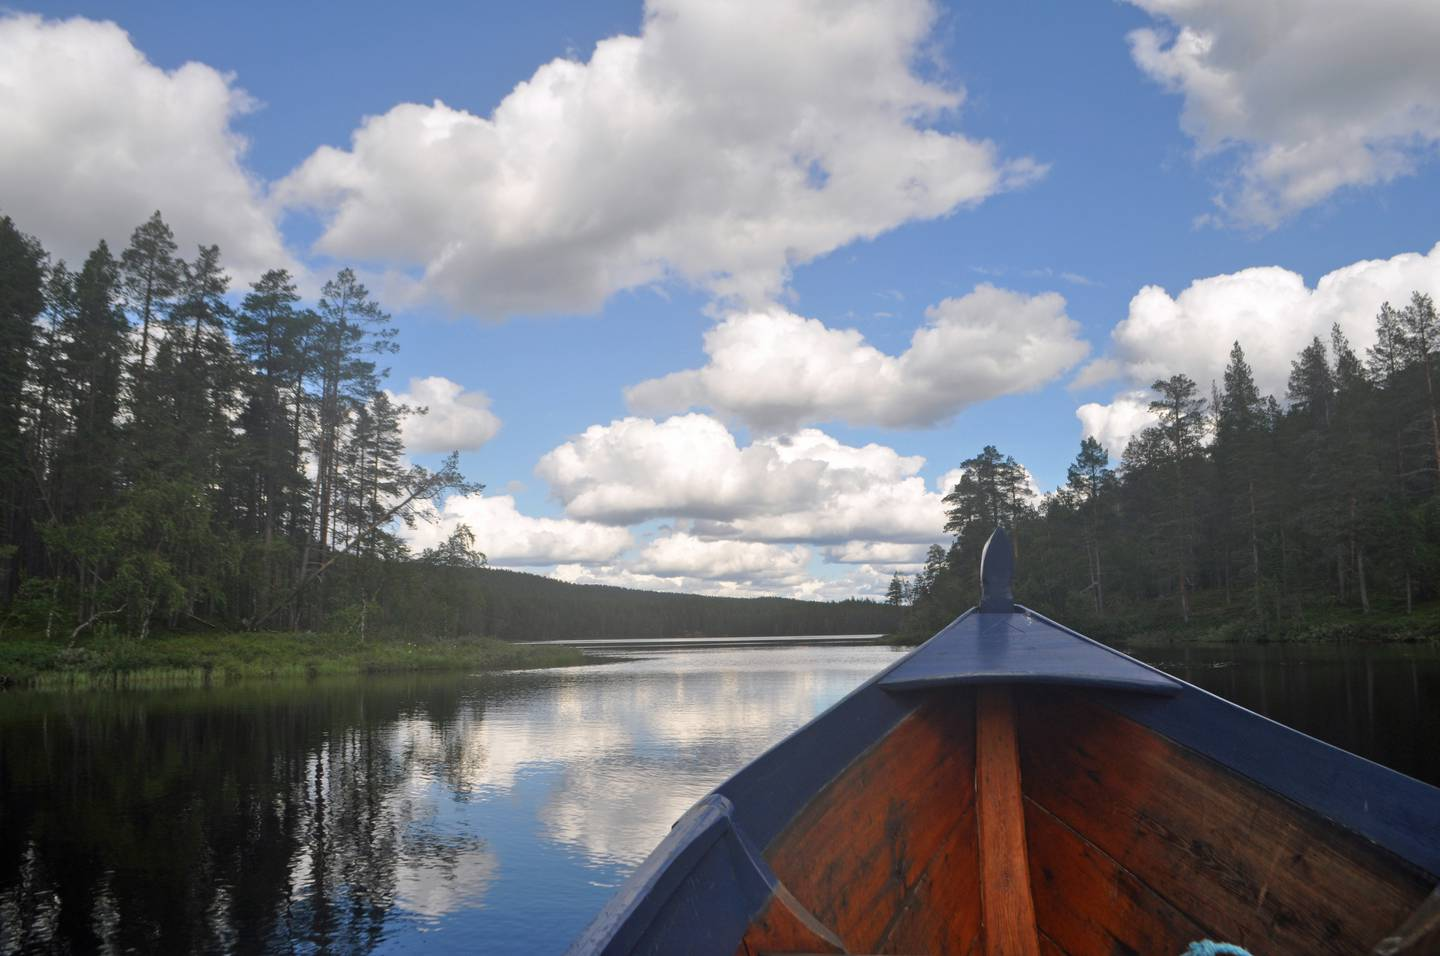 Travelling by boat in Lemmenjoki National Park, the largest national park in Finland (Photo by Rosemary behan) *** Local Caption ***  wk25de-tr-best-lapland.jpg